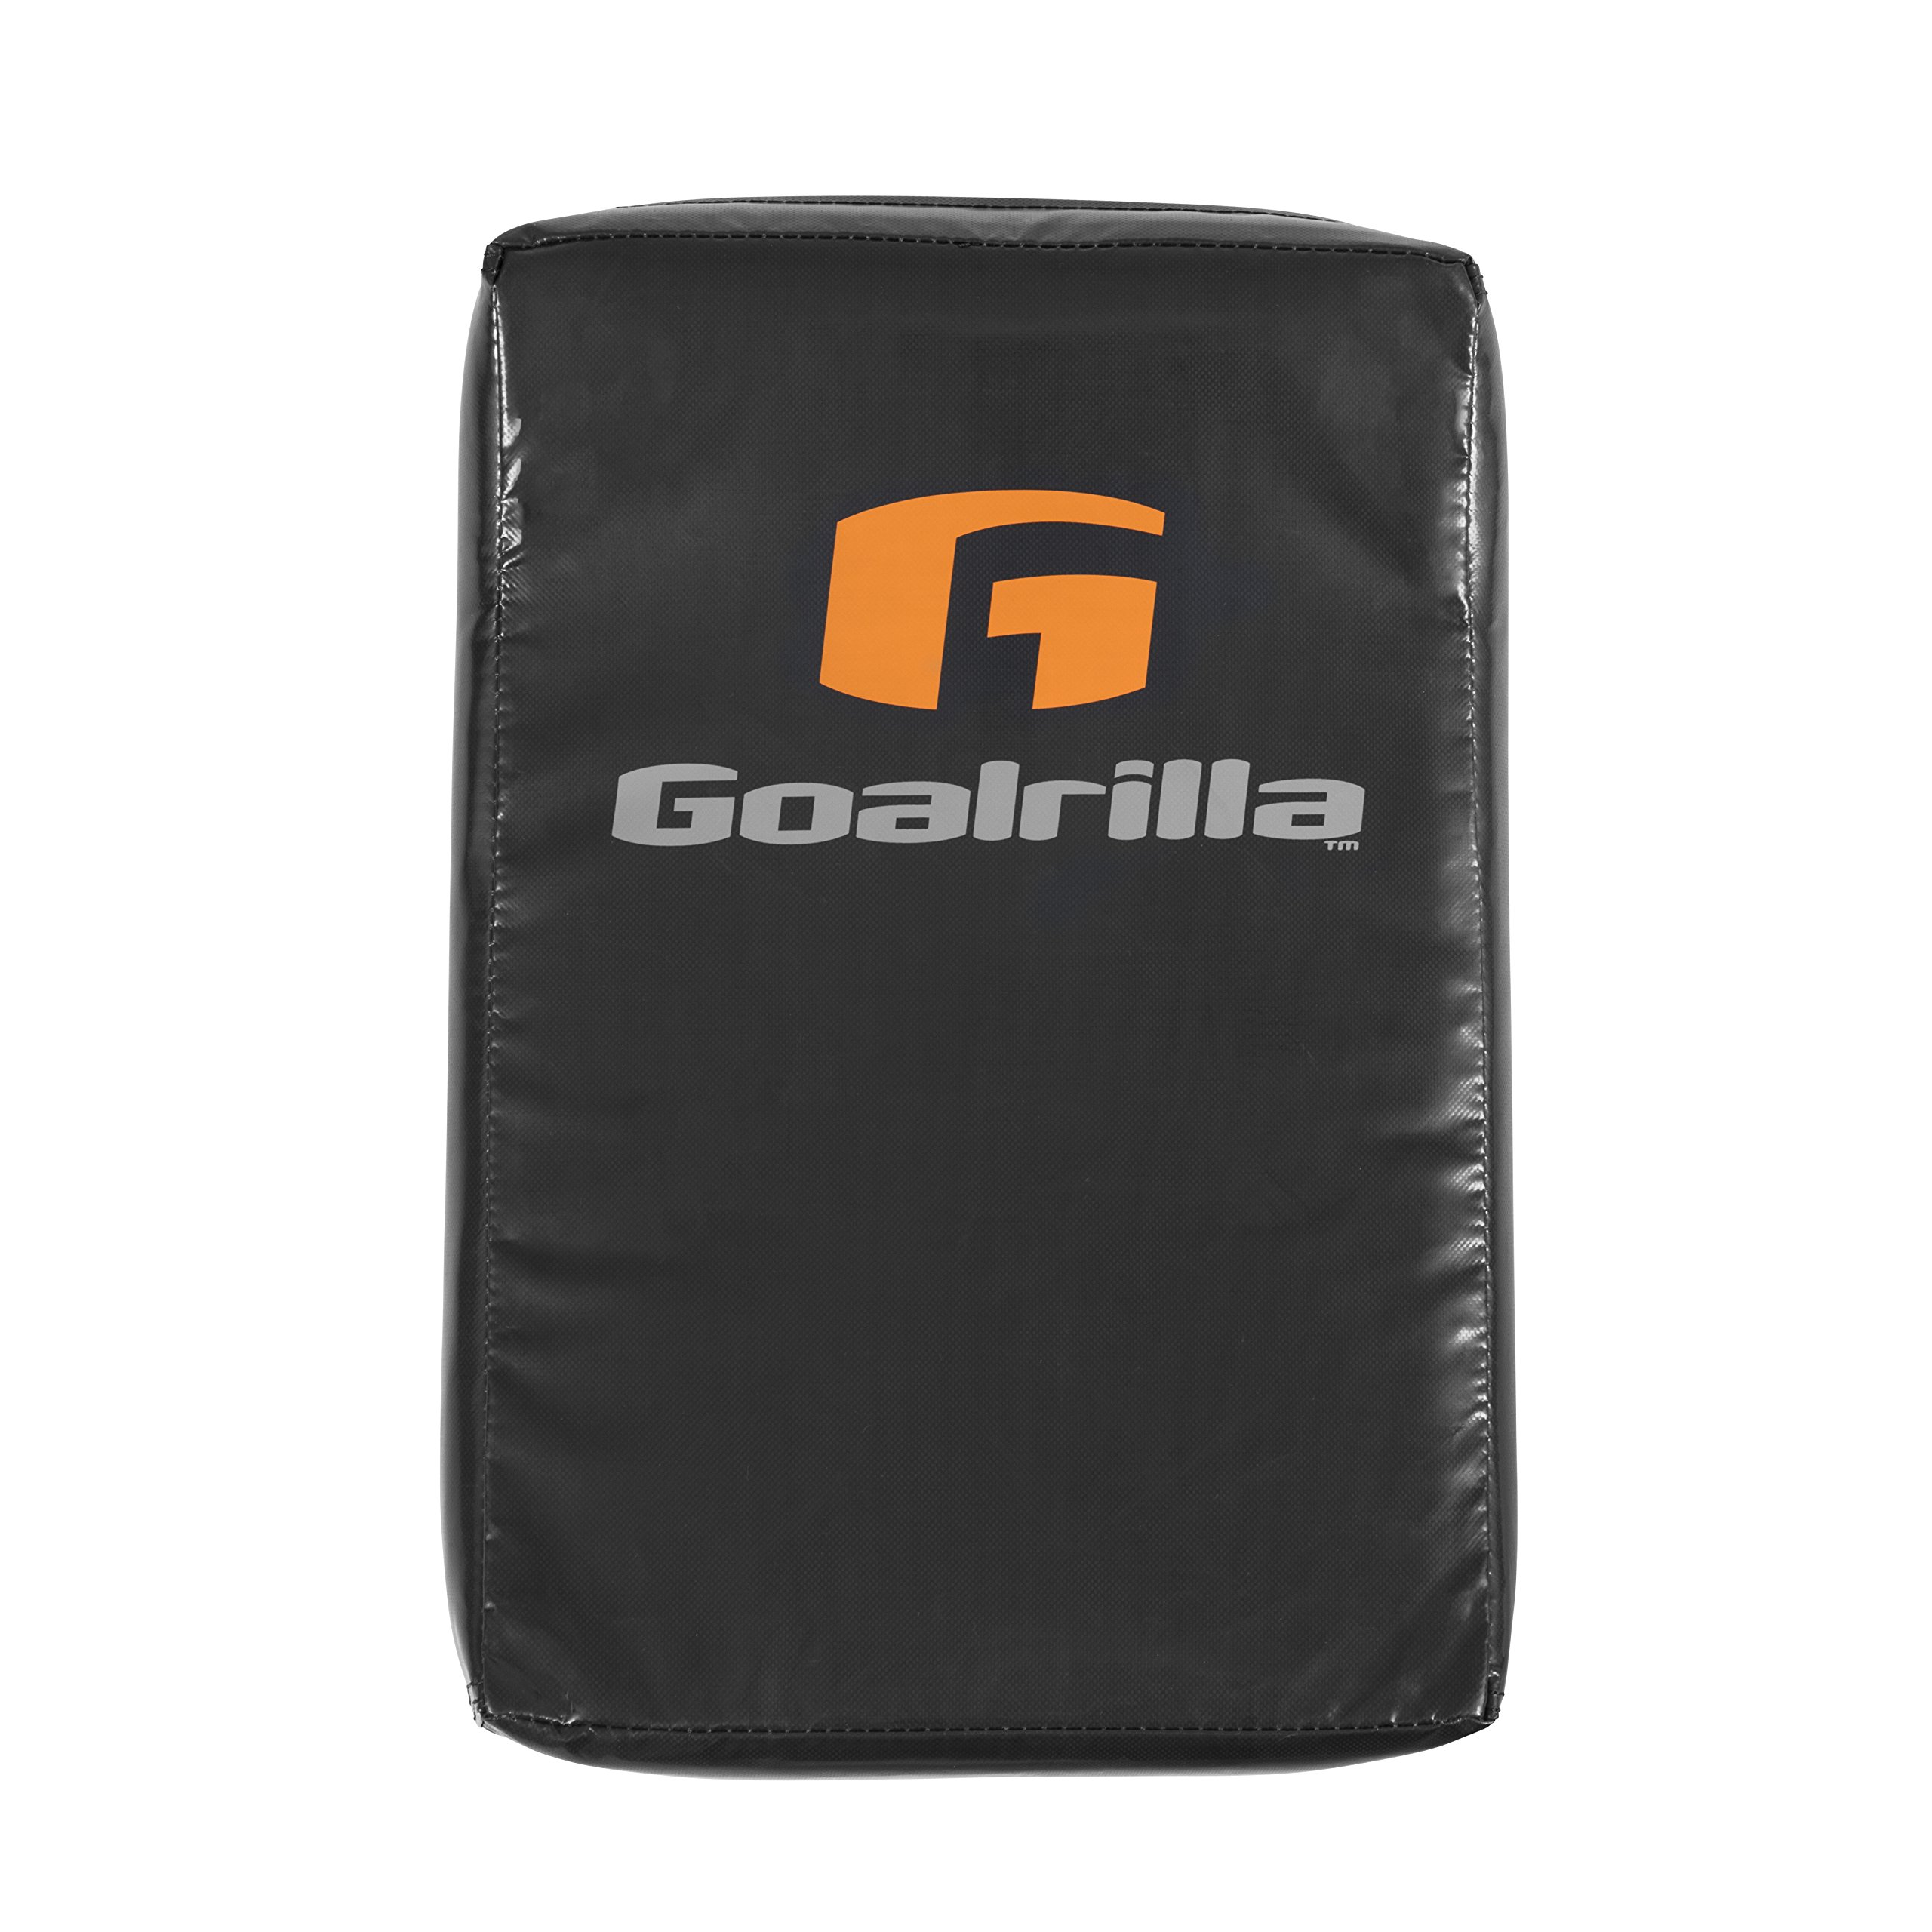 Goalrilla Heavy-Duty Blocking Dummy with 2 Reinforced Handles for Improved Control for Basketball, Football and Other Simulated Contact Drills